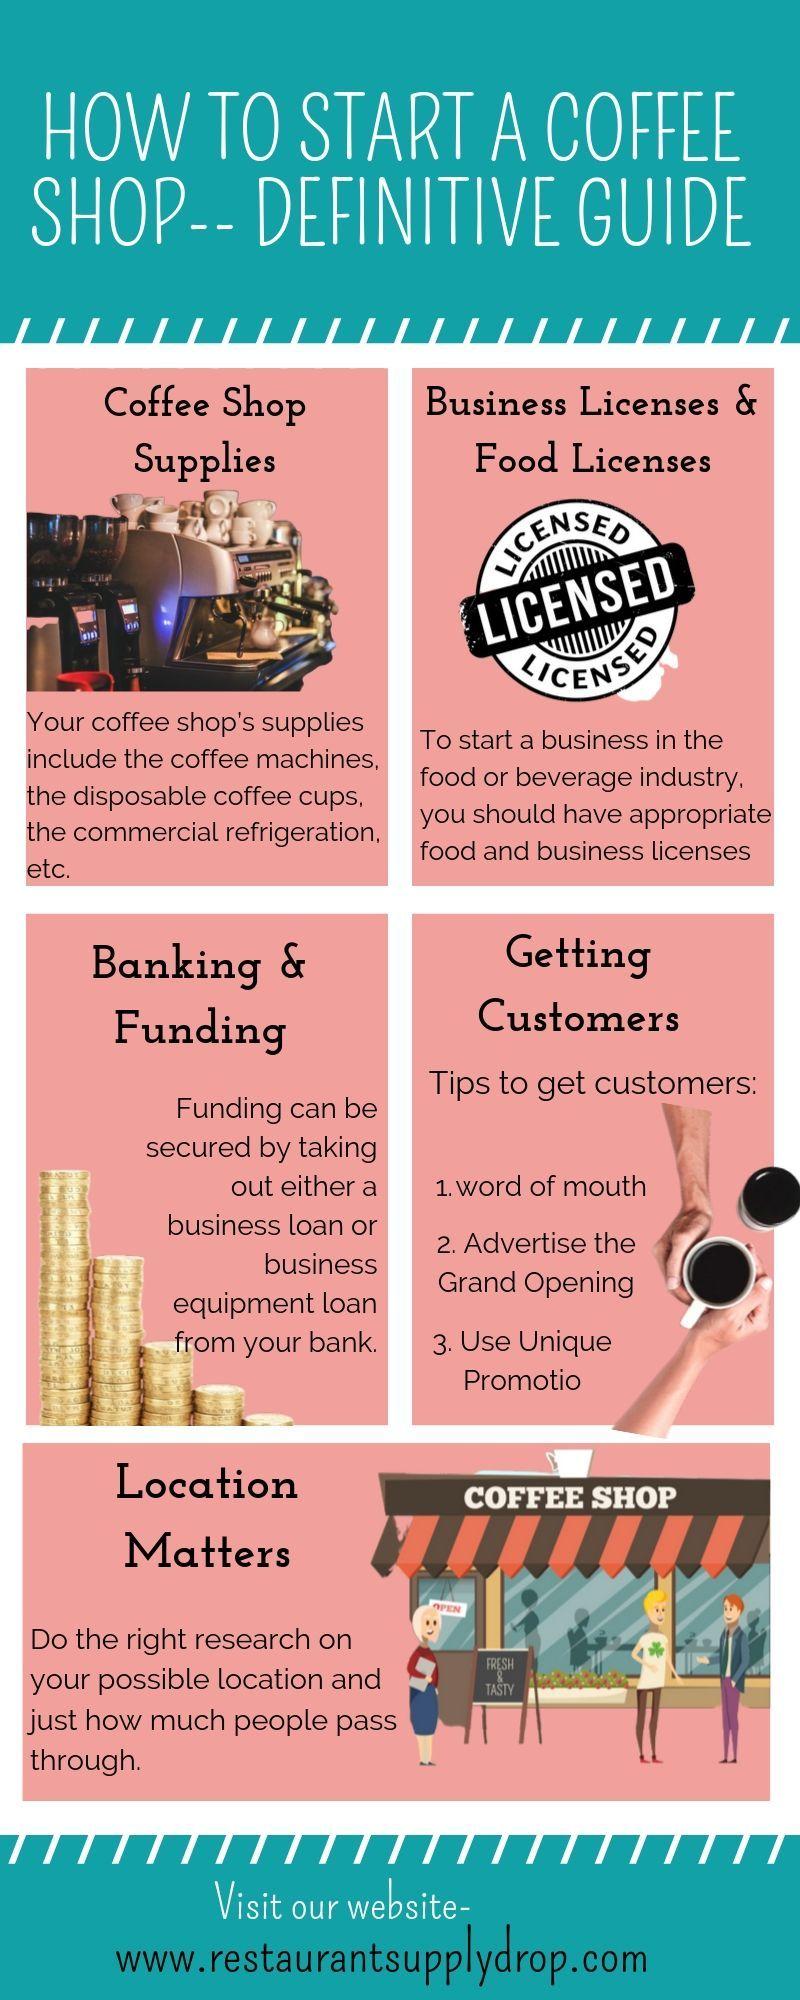 How to start a coffee shop definitive guide starting